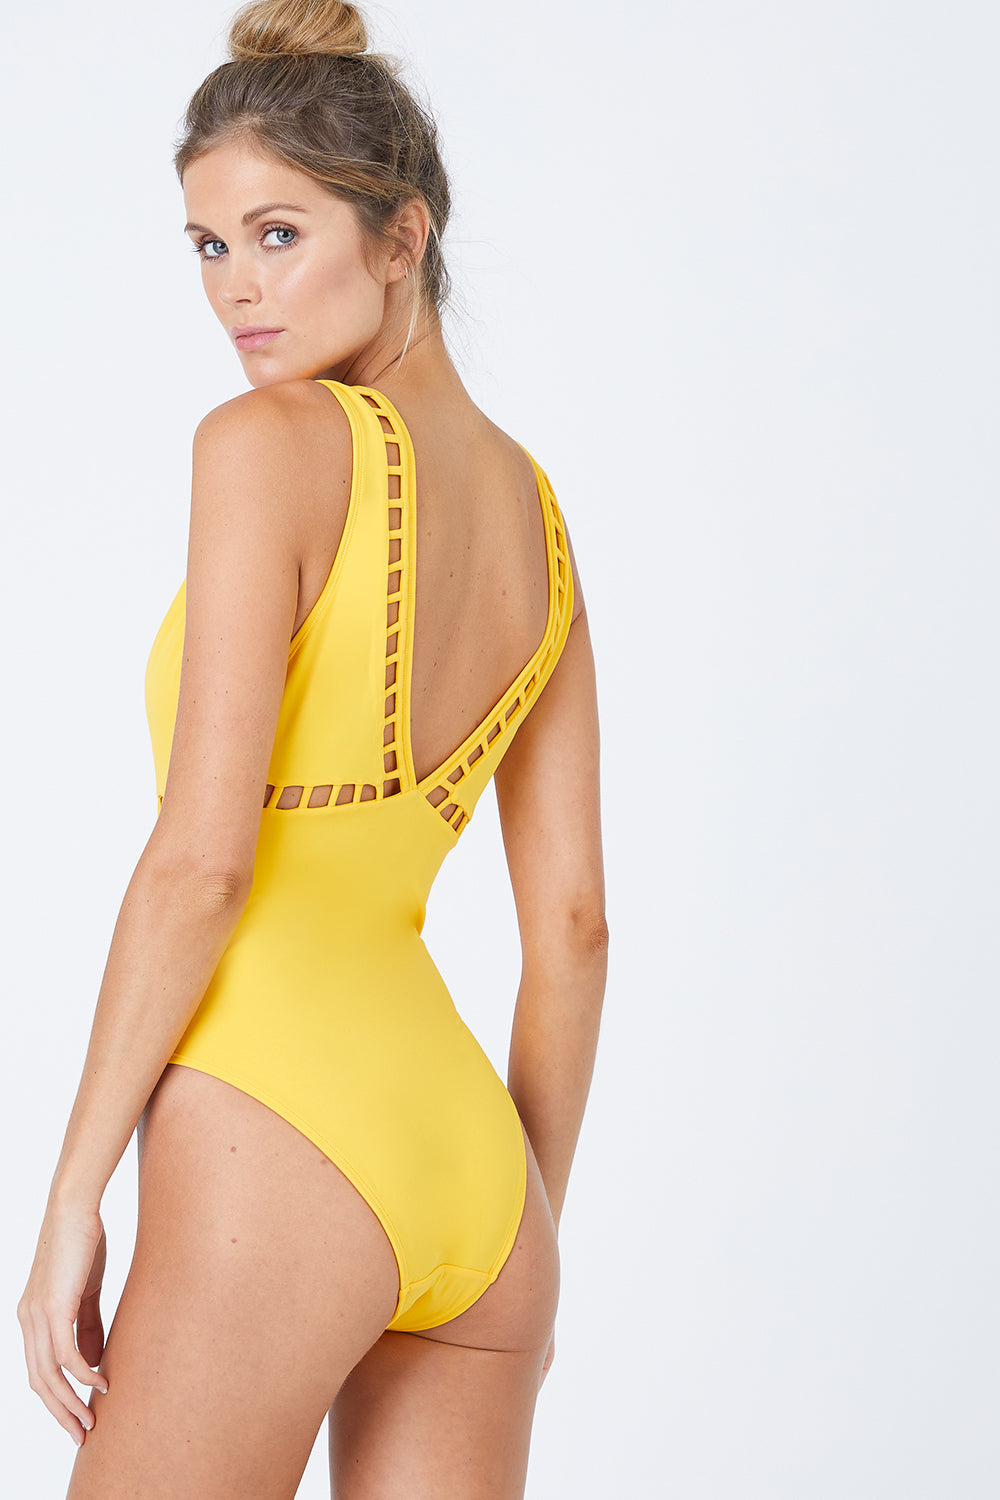 51bd1f8880 ... OYE SWIMWEAR Ela Plunge Cut Out One Piece Swimsuit - Yellow - undefined  undefined